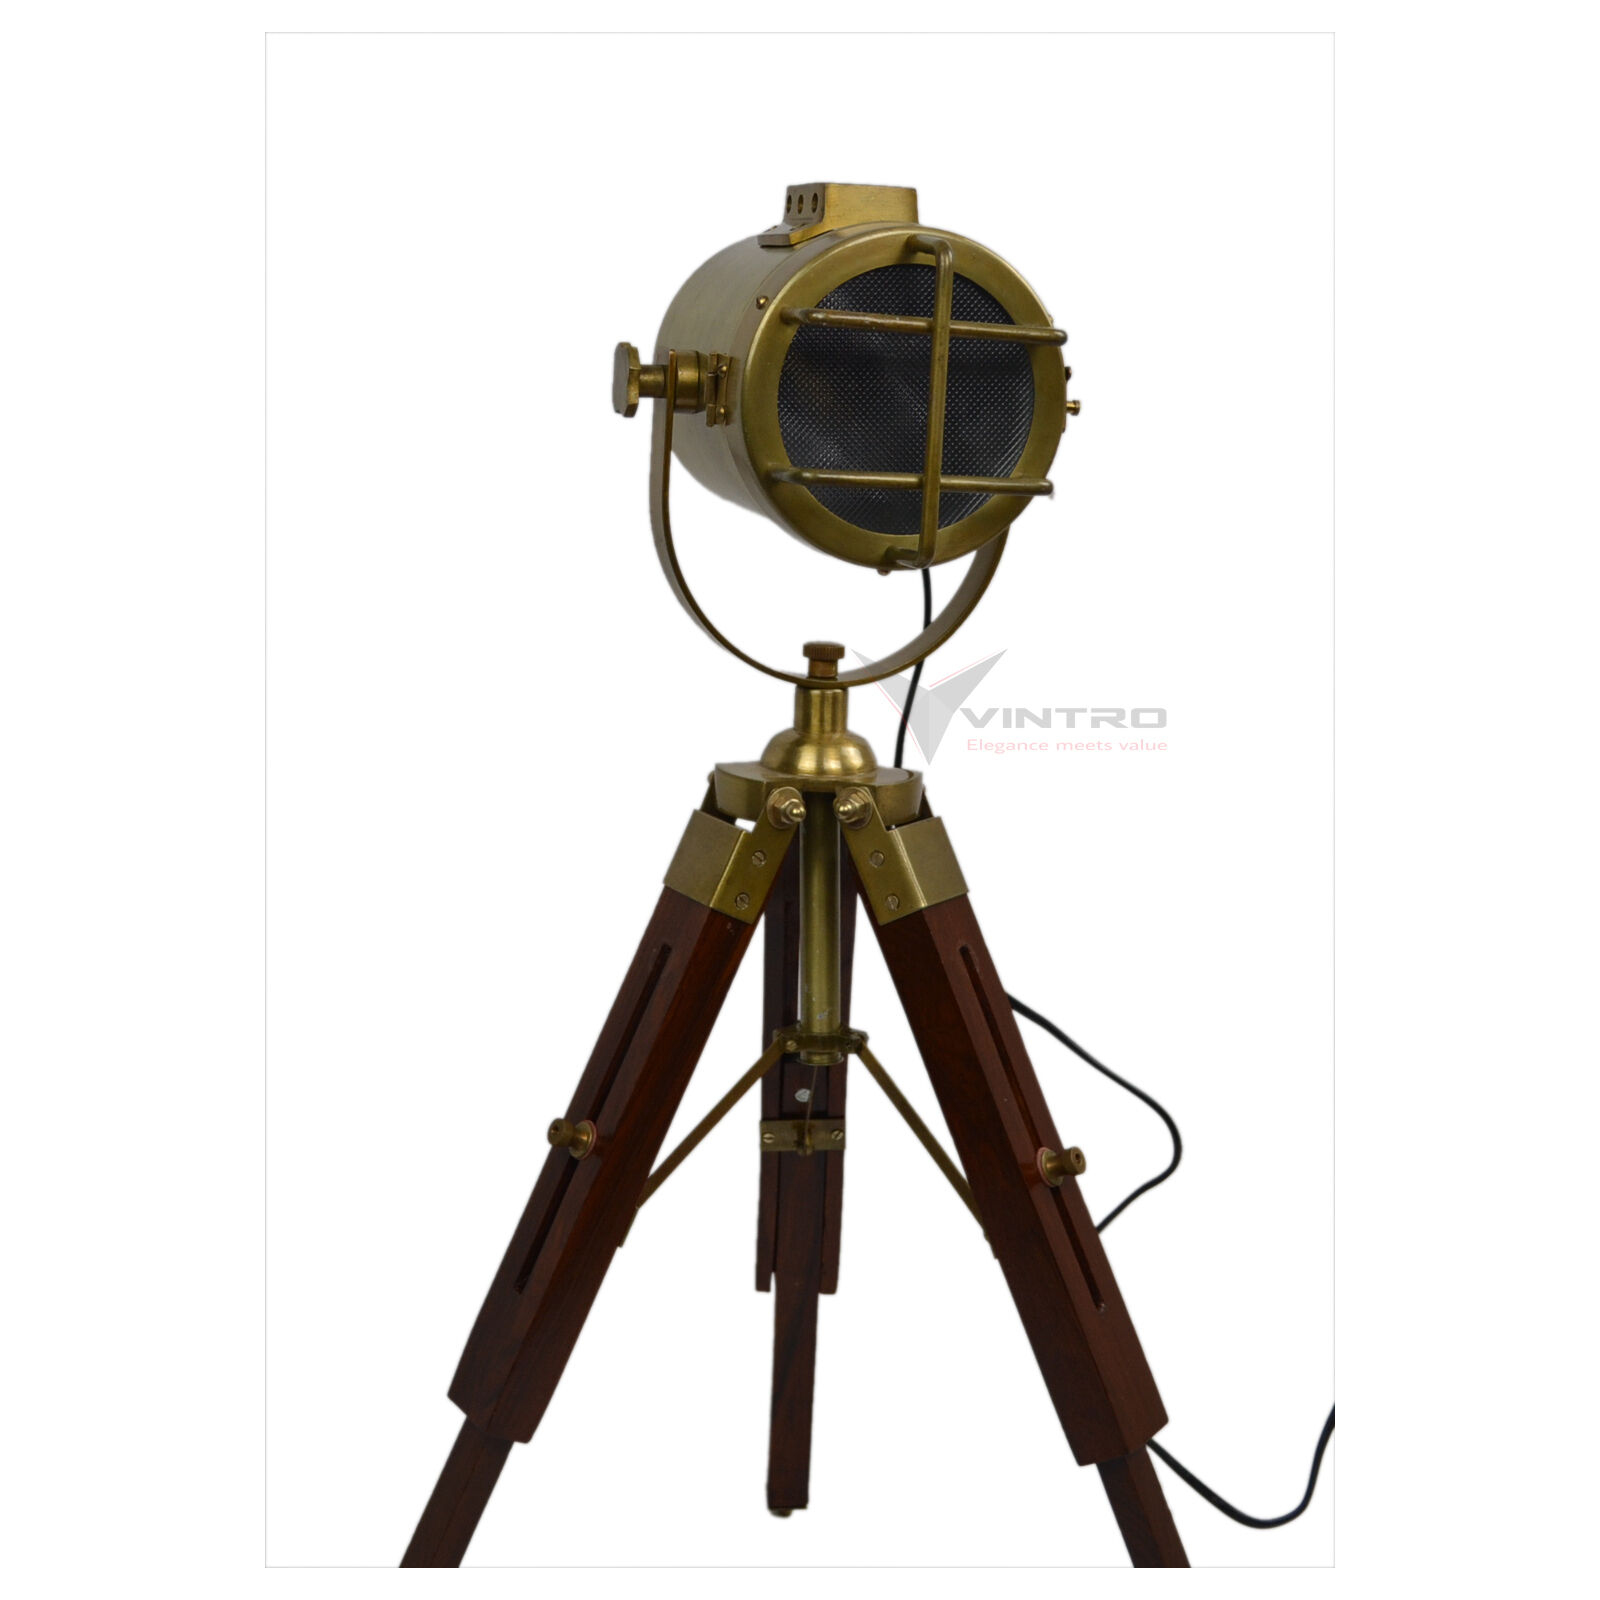 Brass tripod nautical table lamp spot light wooden floor lamp aud picclick au - Tripod spotlight lamp ...